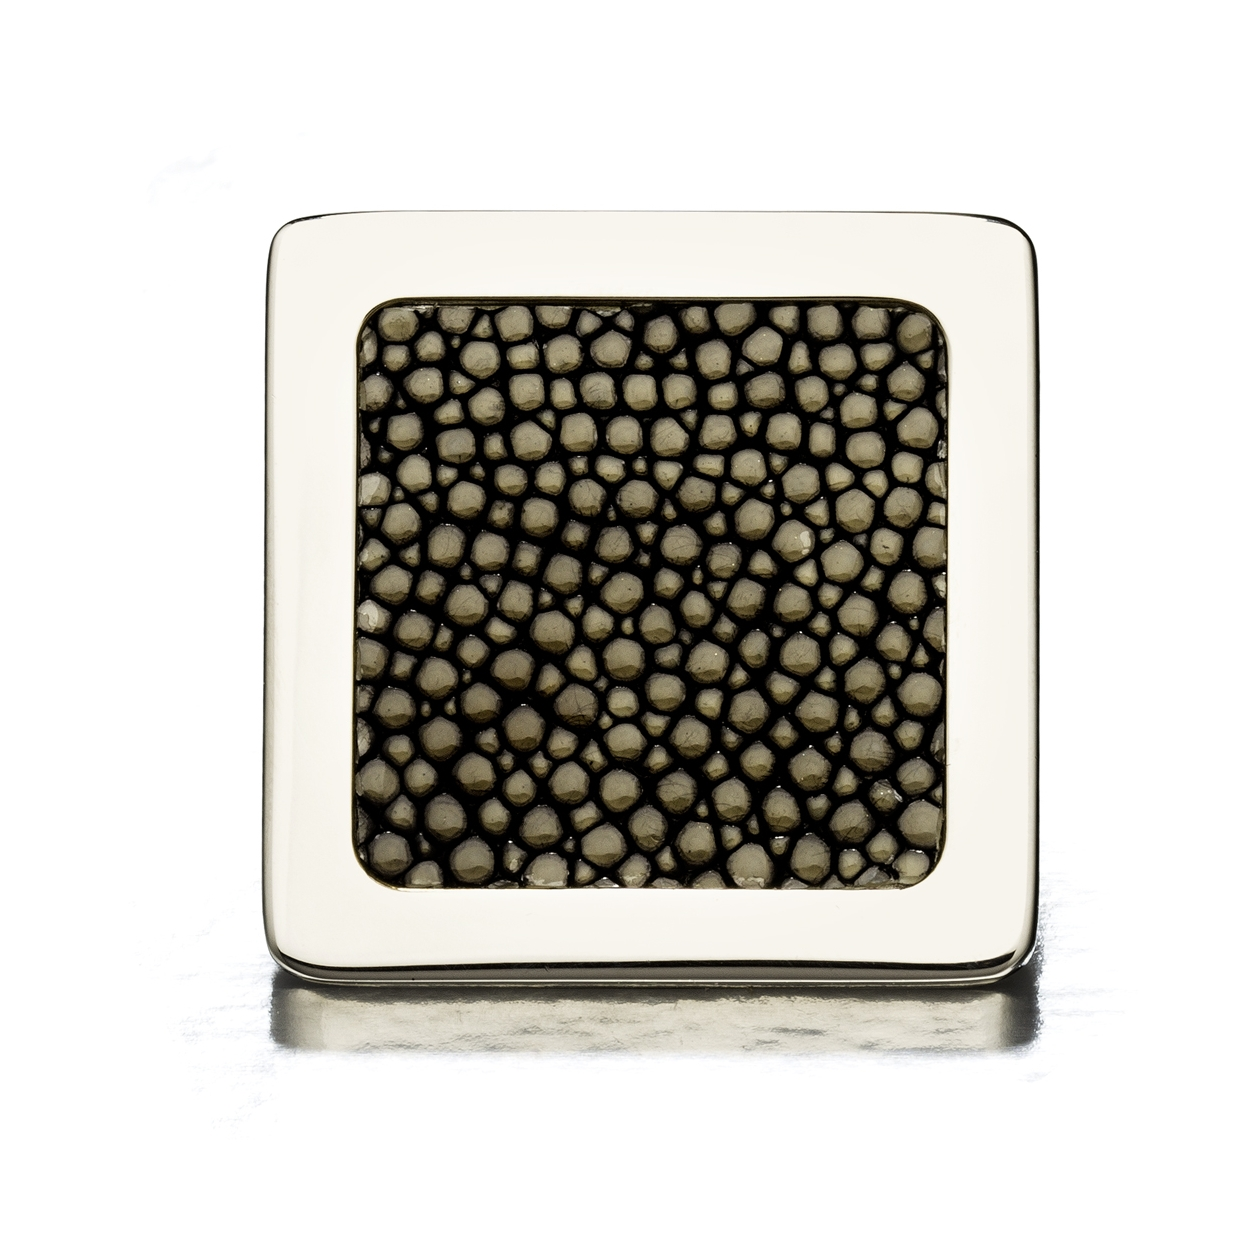 SQUARE KNOB I ONYX SHAGREEN I CAVIAR  Polished Nickel & Shagreen (gold onyx)